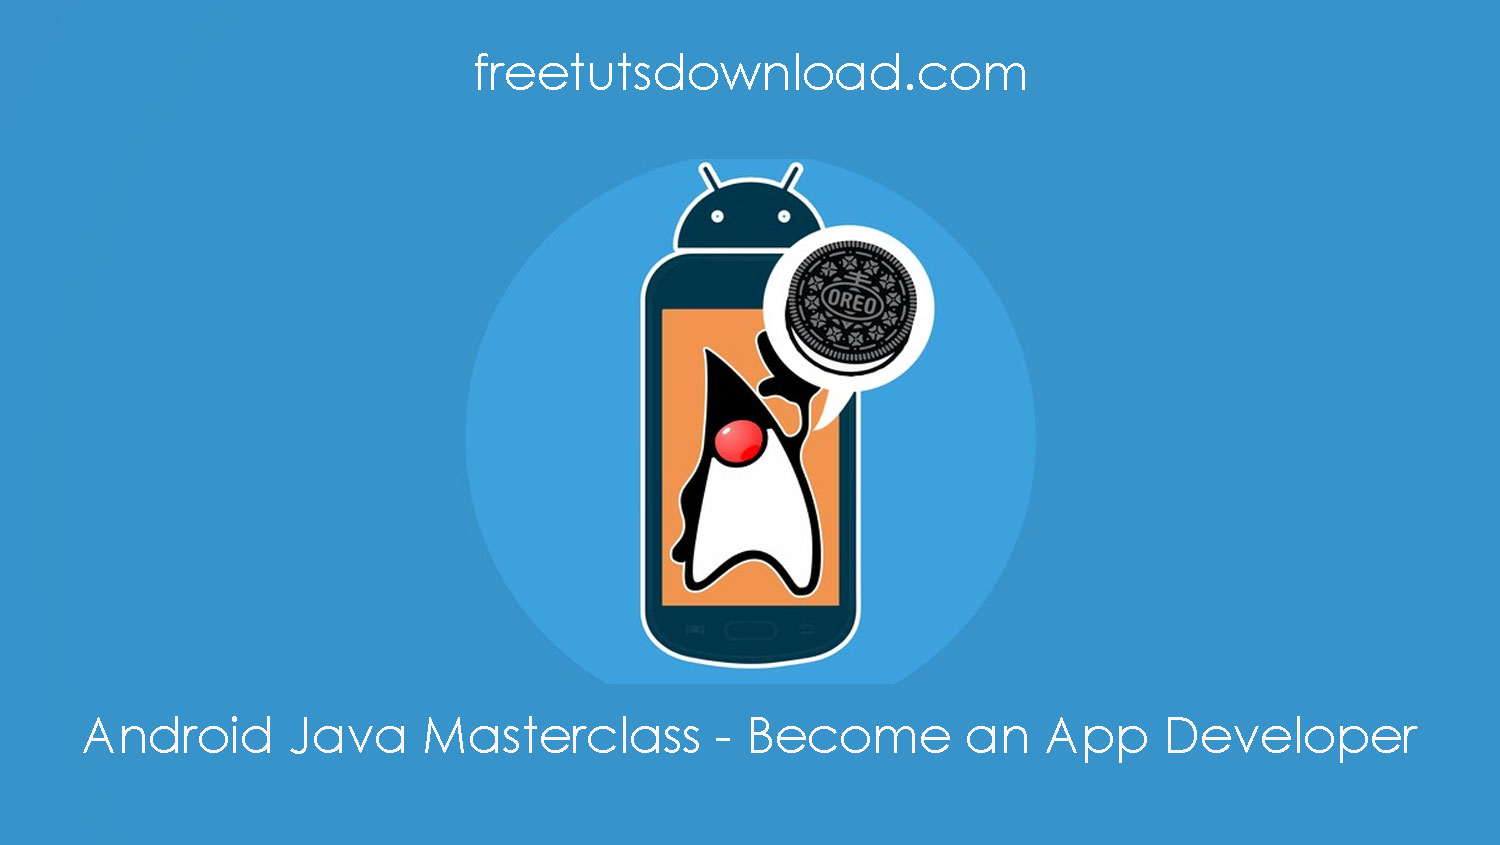 Android Java Masterclass - Become an App Developer free download